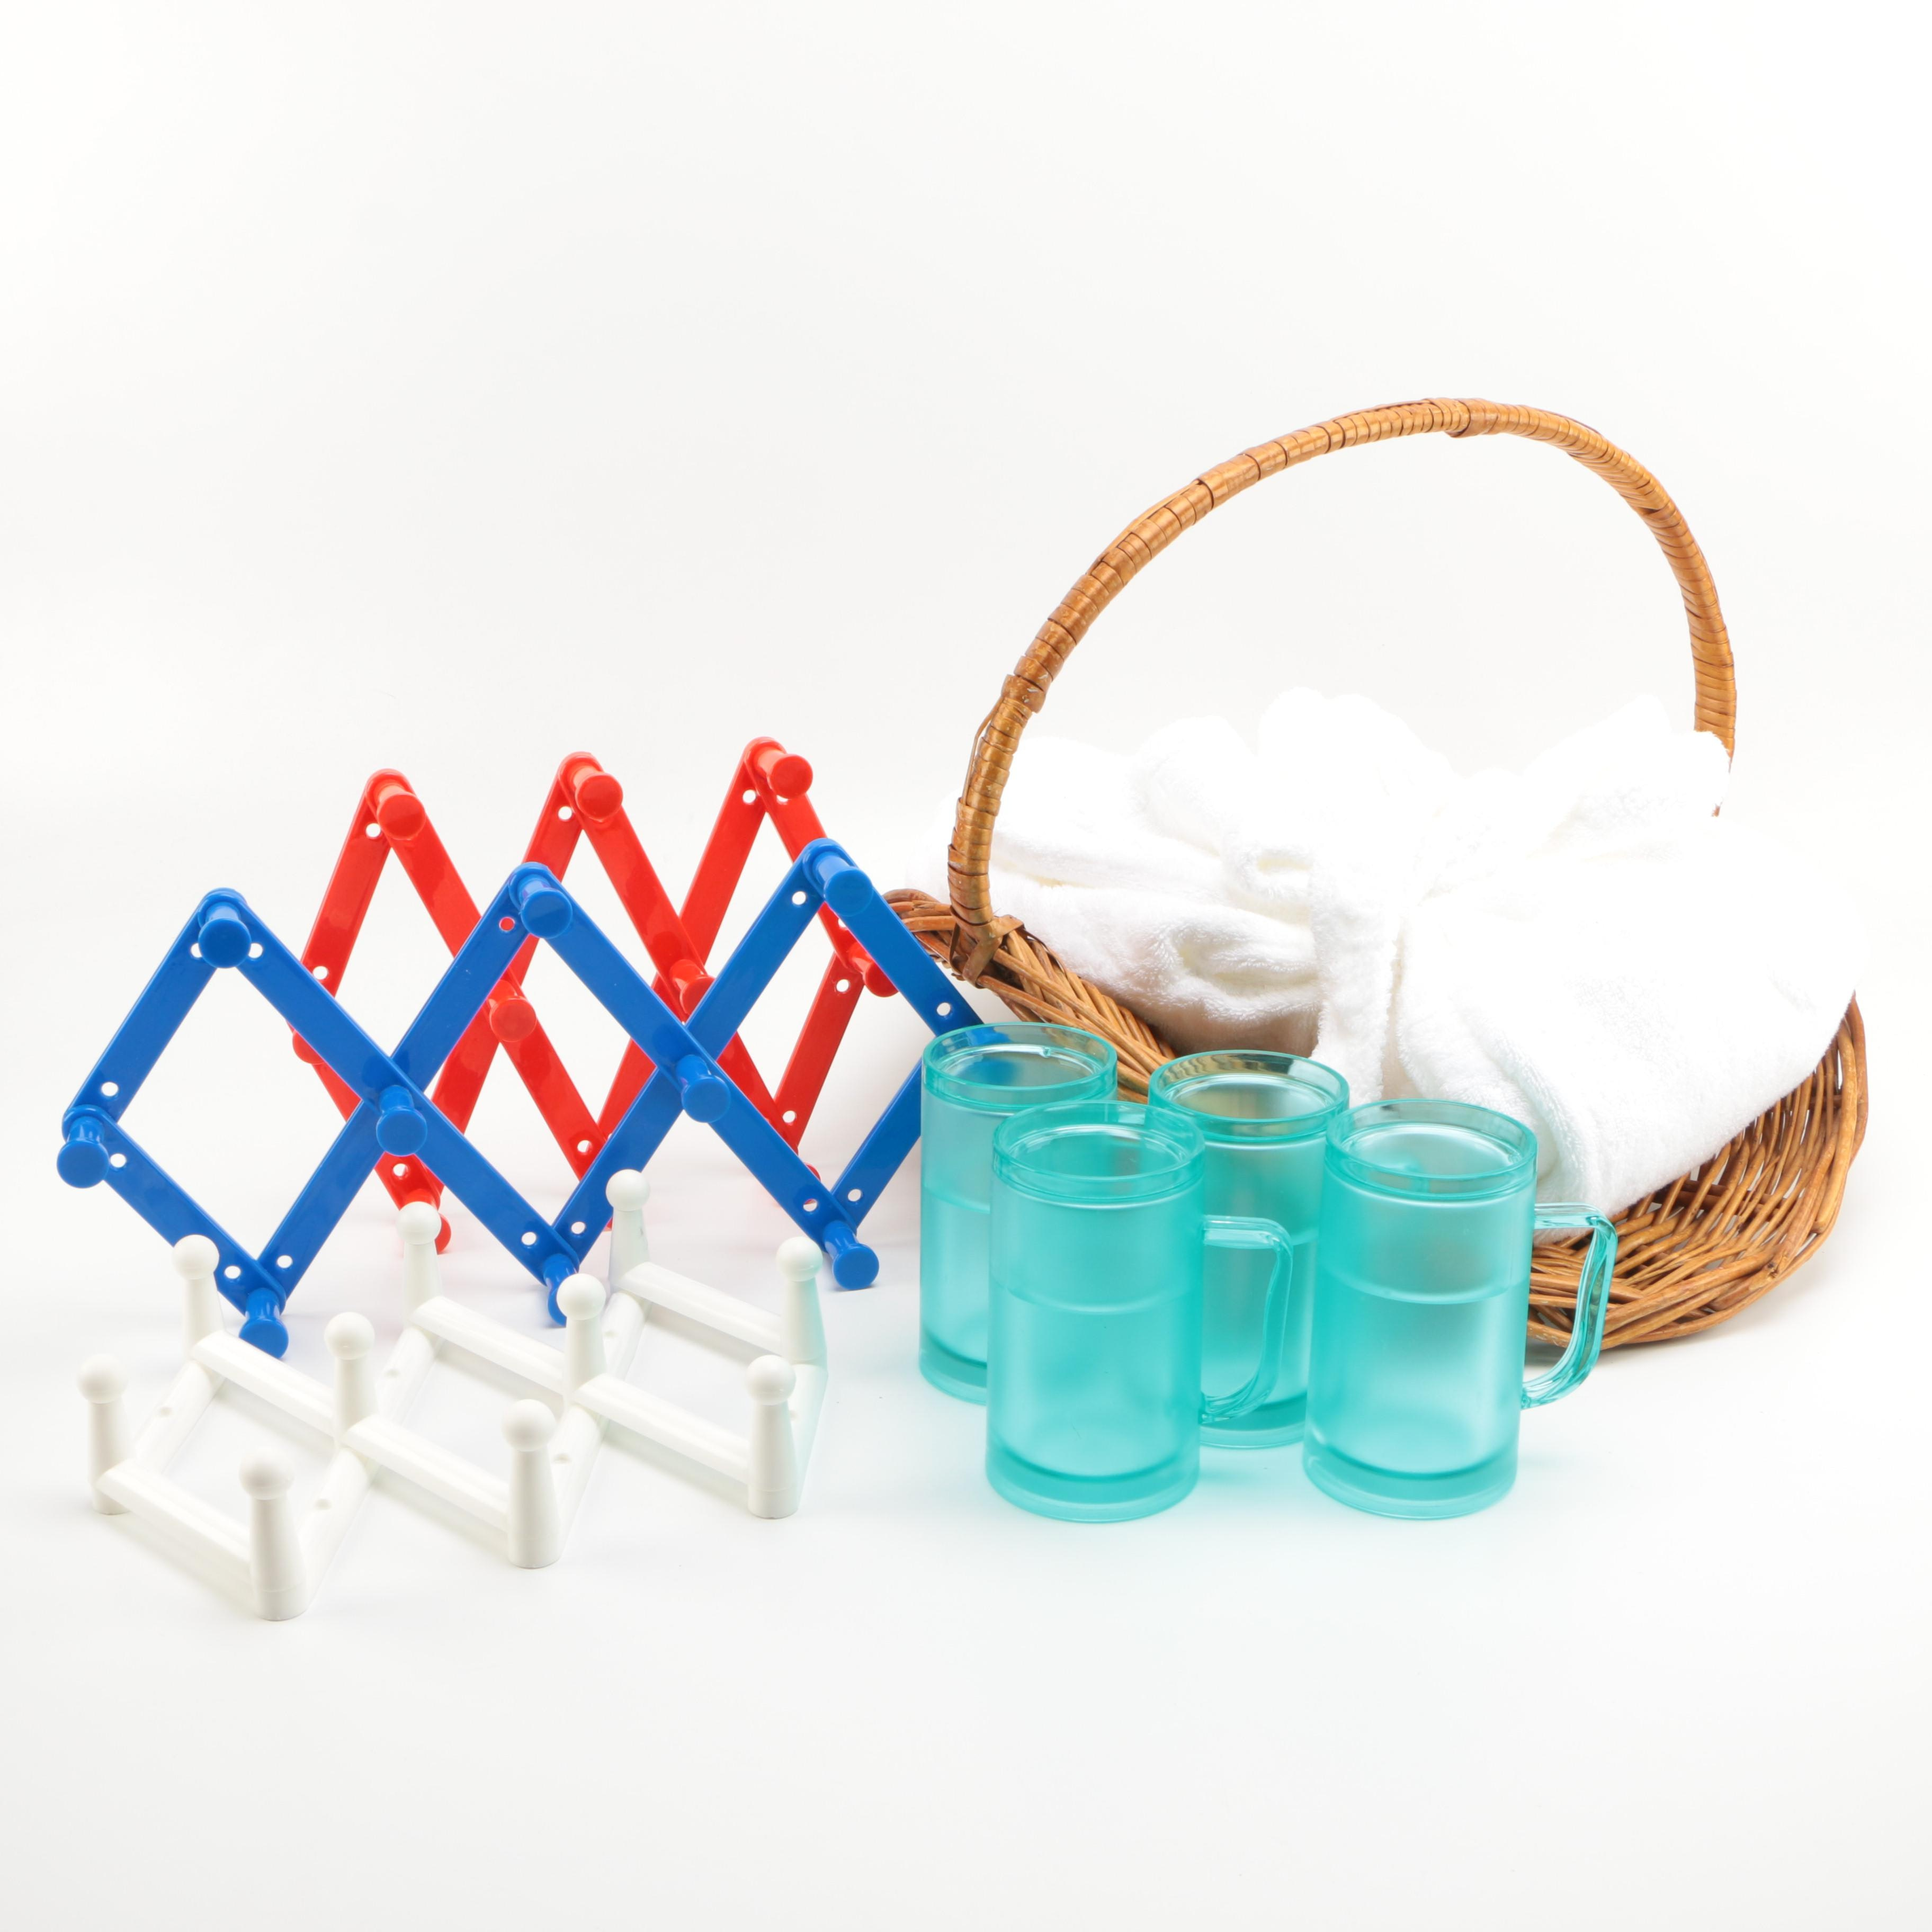 Robe, Basket, Cups, and Wall Hooks